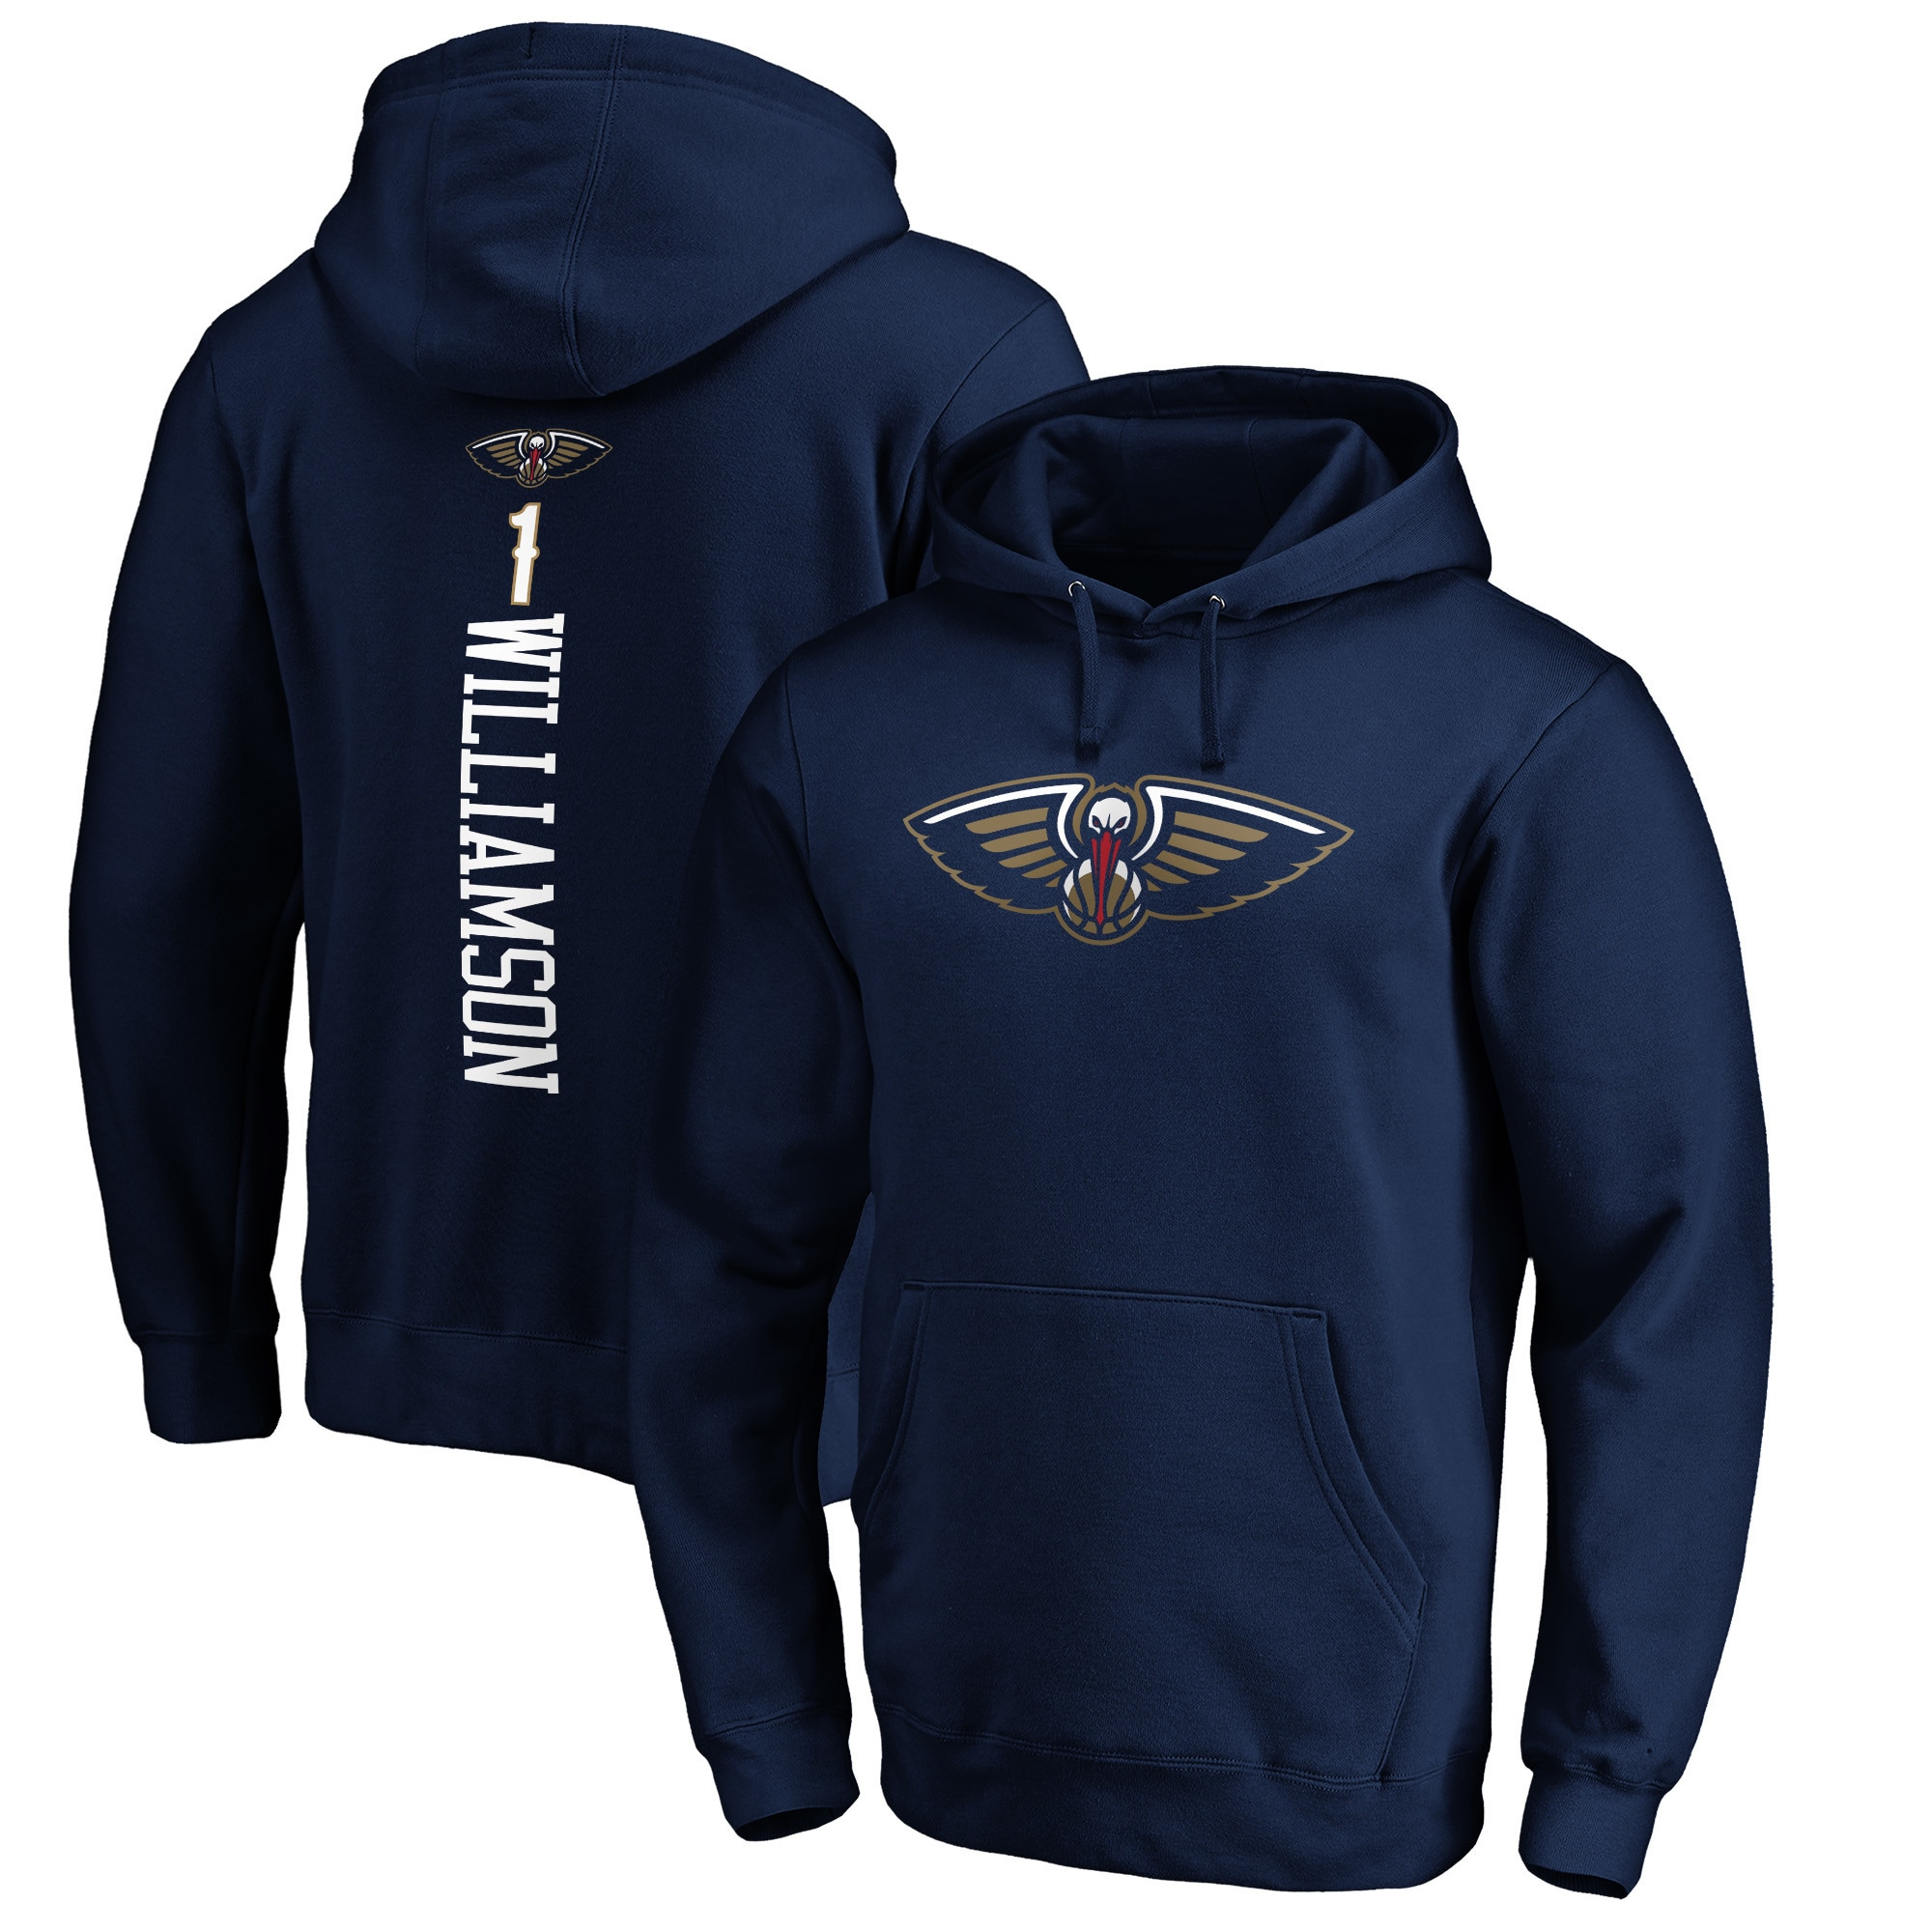 Zion Williamson New Orleans Pelicans Fanatics Branded Team Playmaker Name & Number Pullover Hoodie - Navy